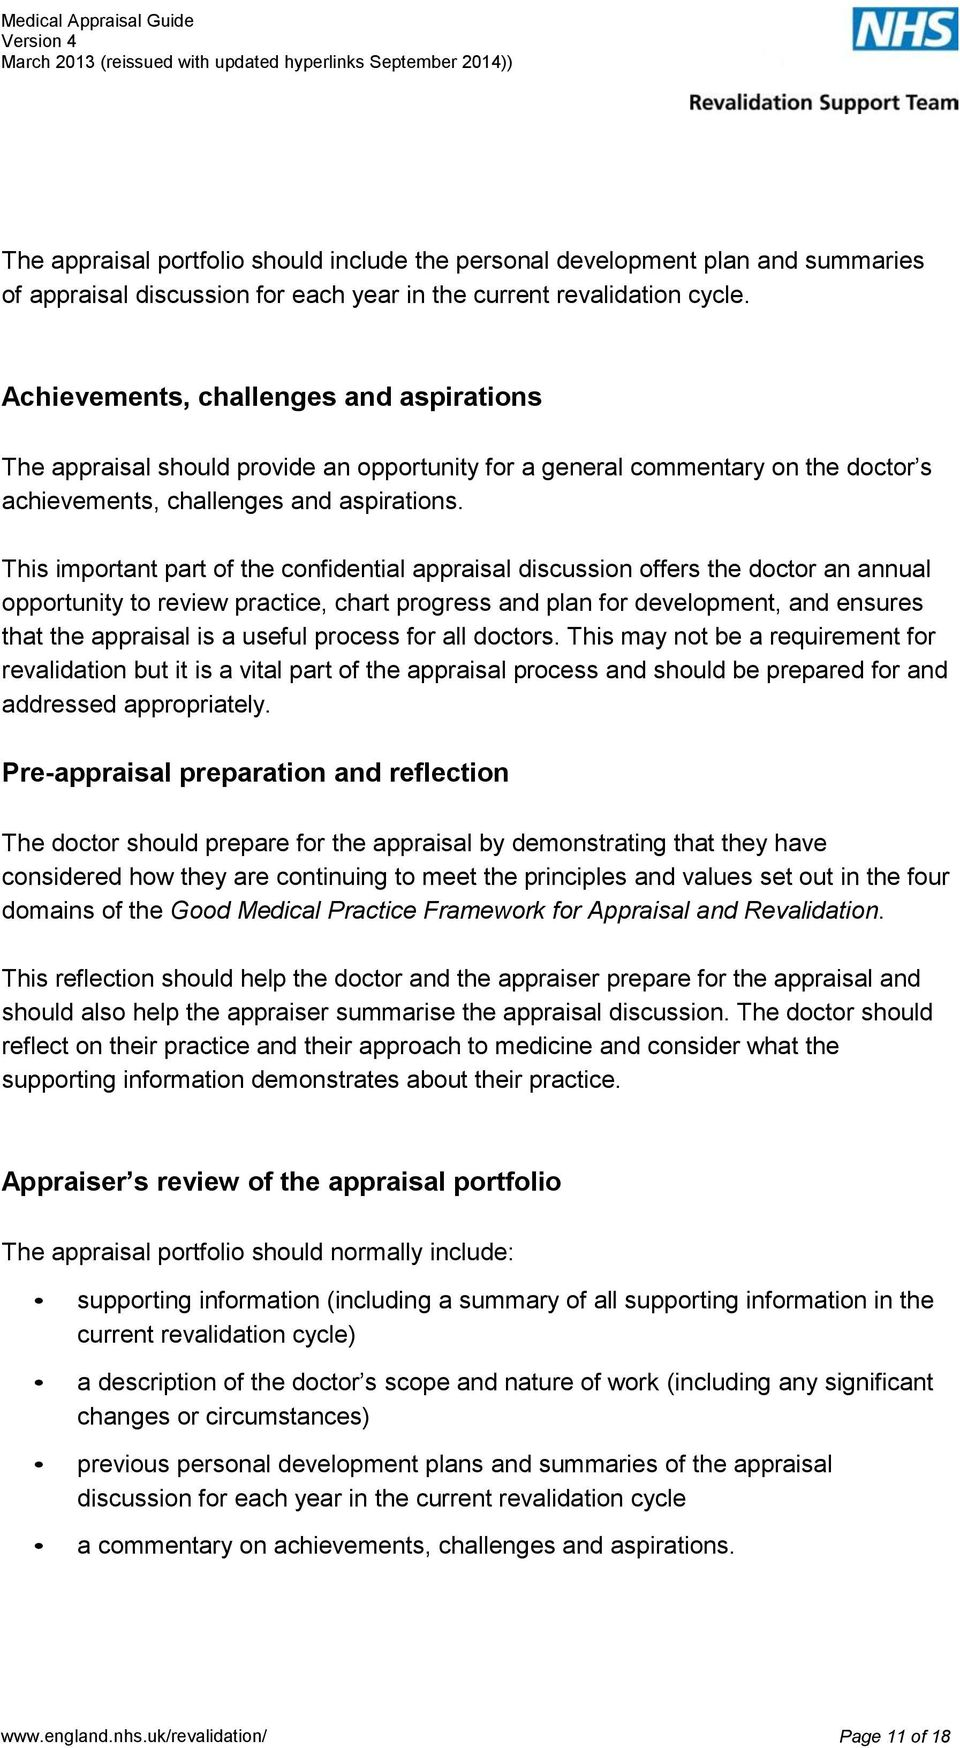 This important part of the confidential appraisal discussion offers the doctor an annual opportunity to review practice, chart progress and plan for development, and ensures that the appraisal is a